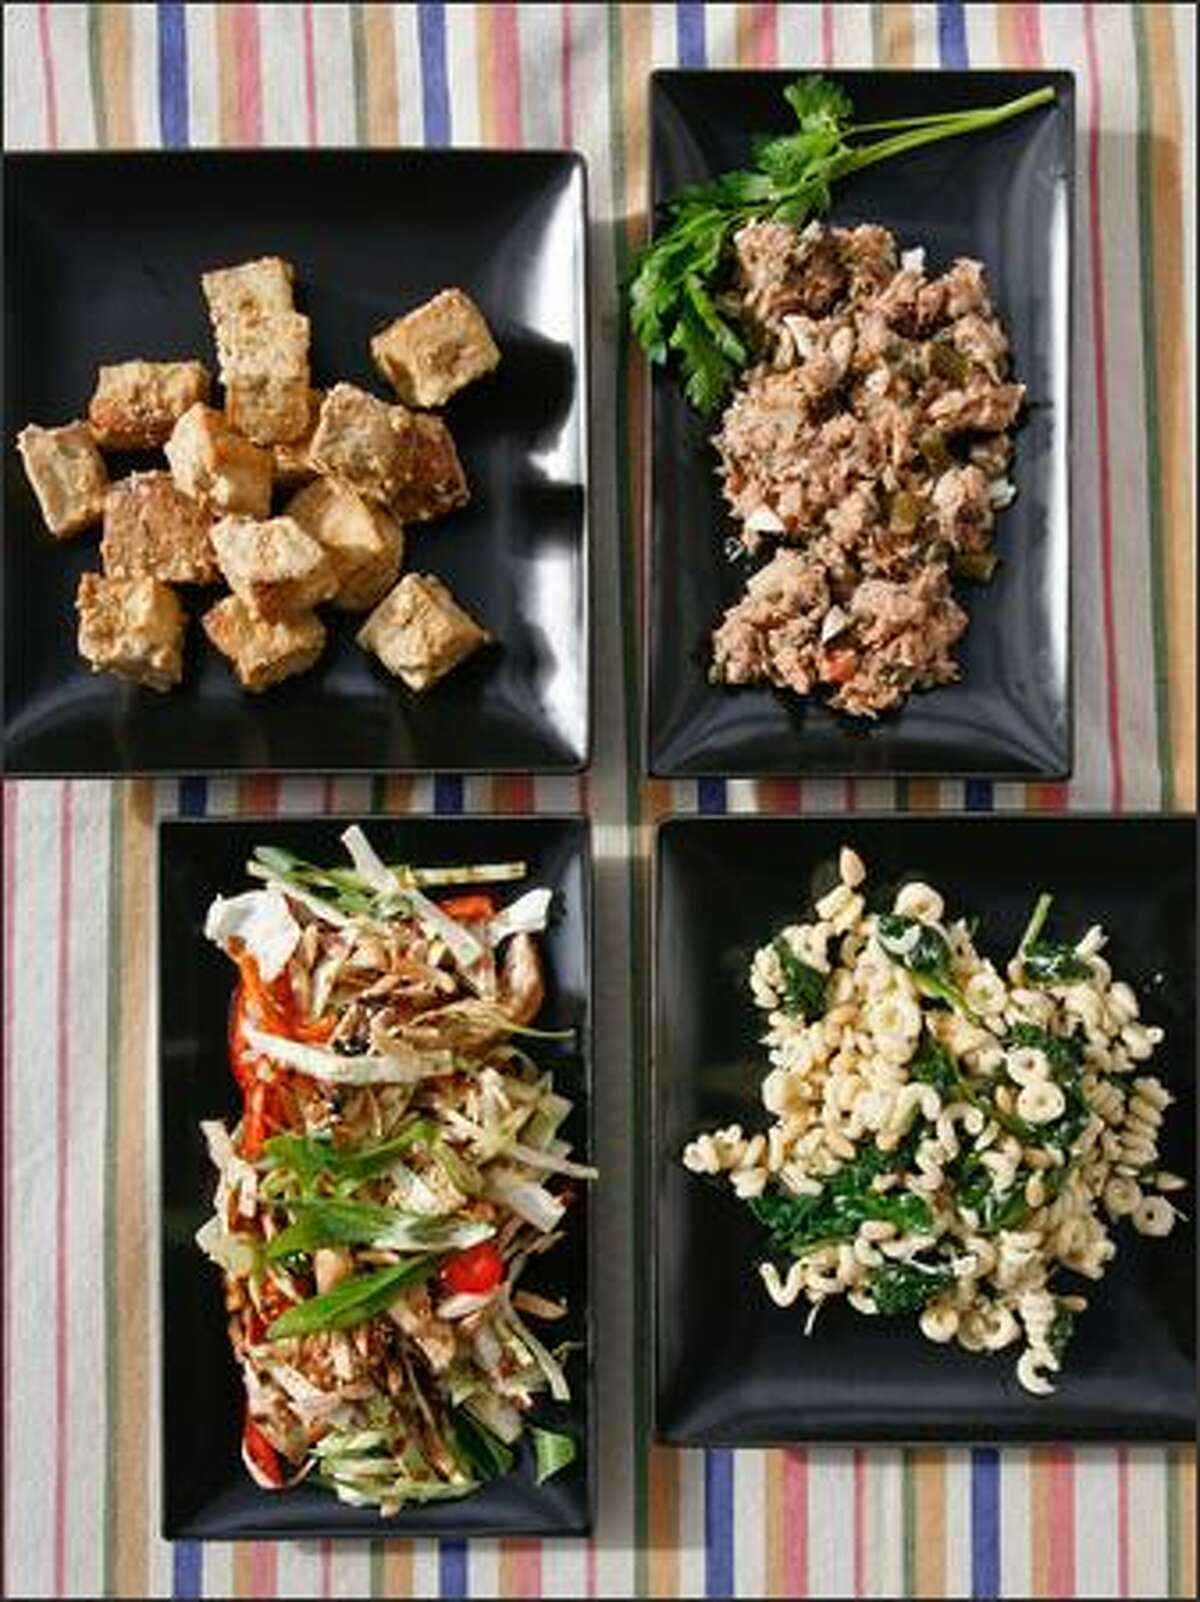 Clockwise from upper left: Steph's Tofu from PCC Natural Markets, Italian Tuna Nicoise Salad from Metropolitan Markets, Spinach Pasta Salad from Top Foods, and Ginger Chicken Cabbage Salad from Pasta & Co.